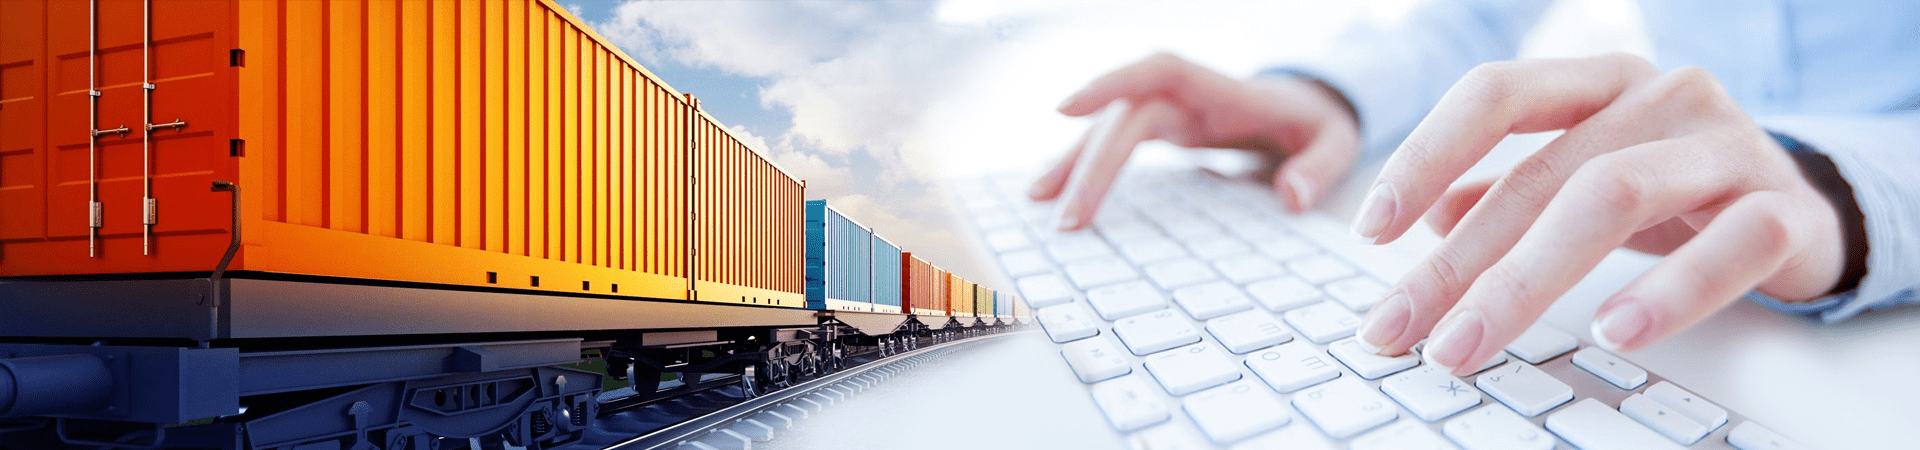 railway-freight-logistics-bpo-services